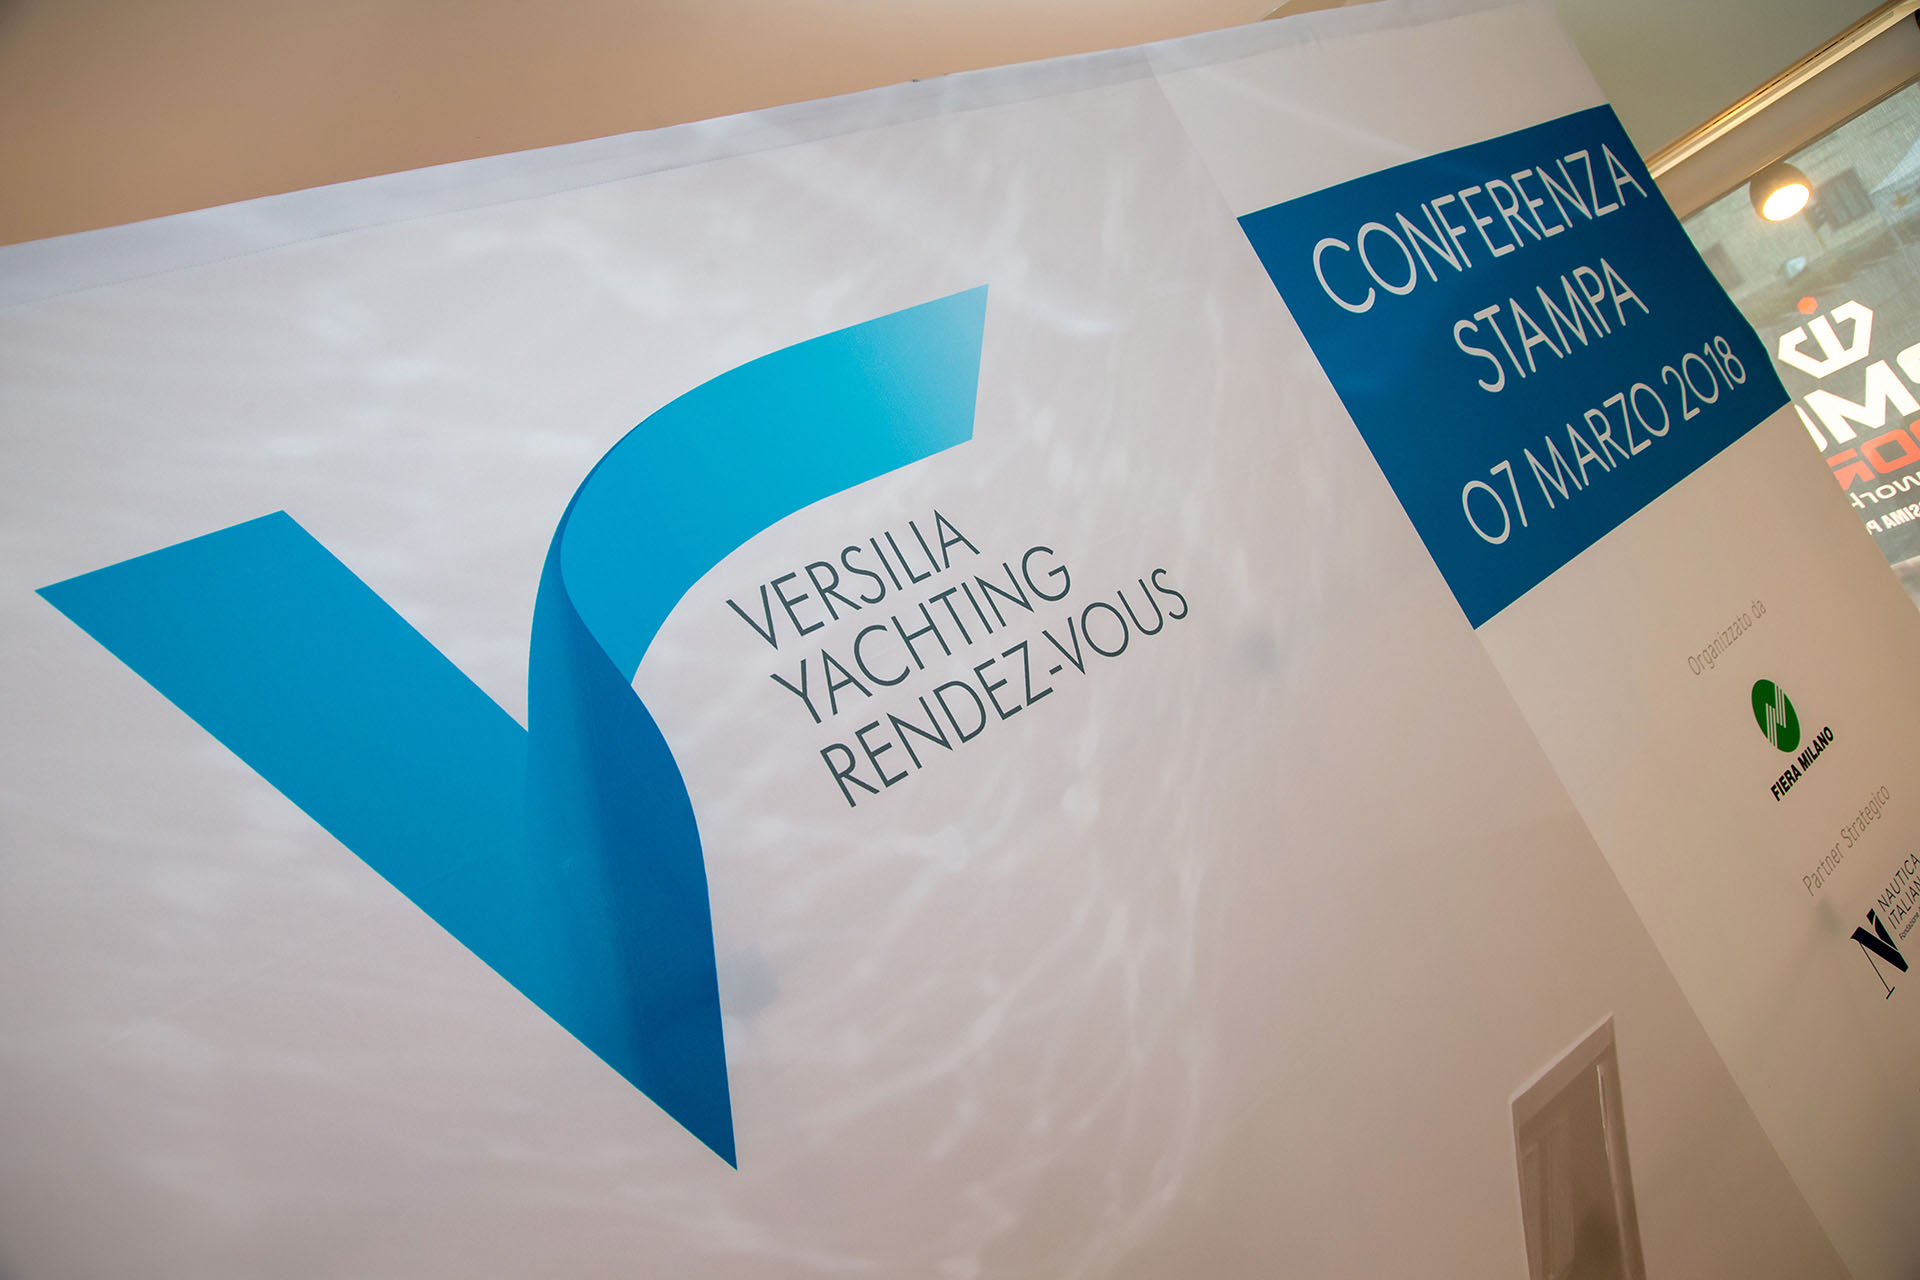 Everything is ready for the second Versilia Yachting Rendez-vous